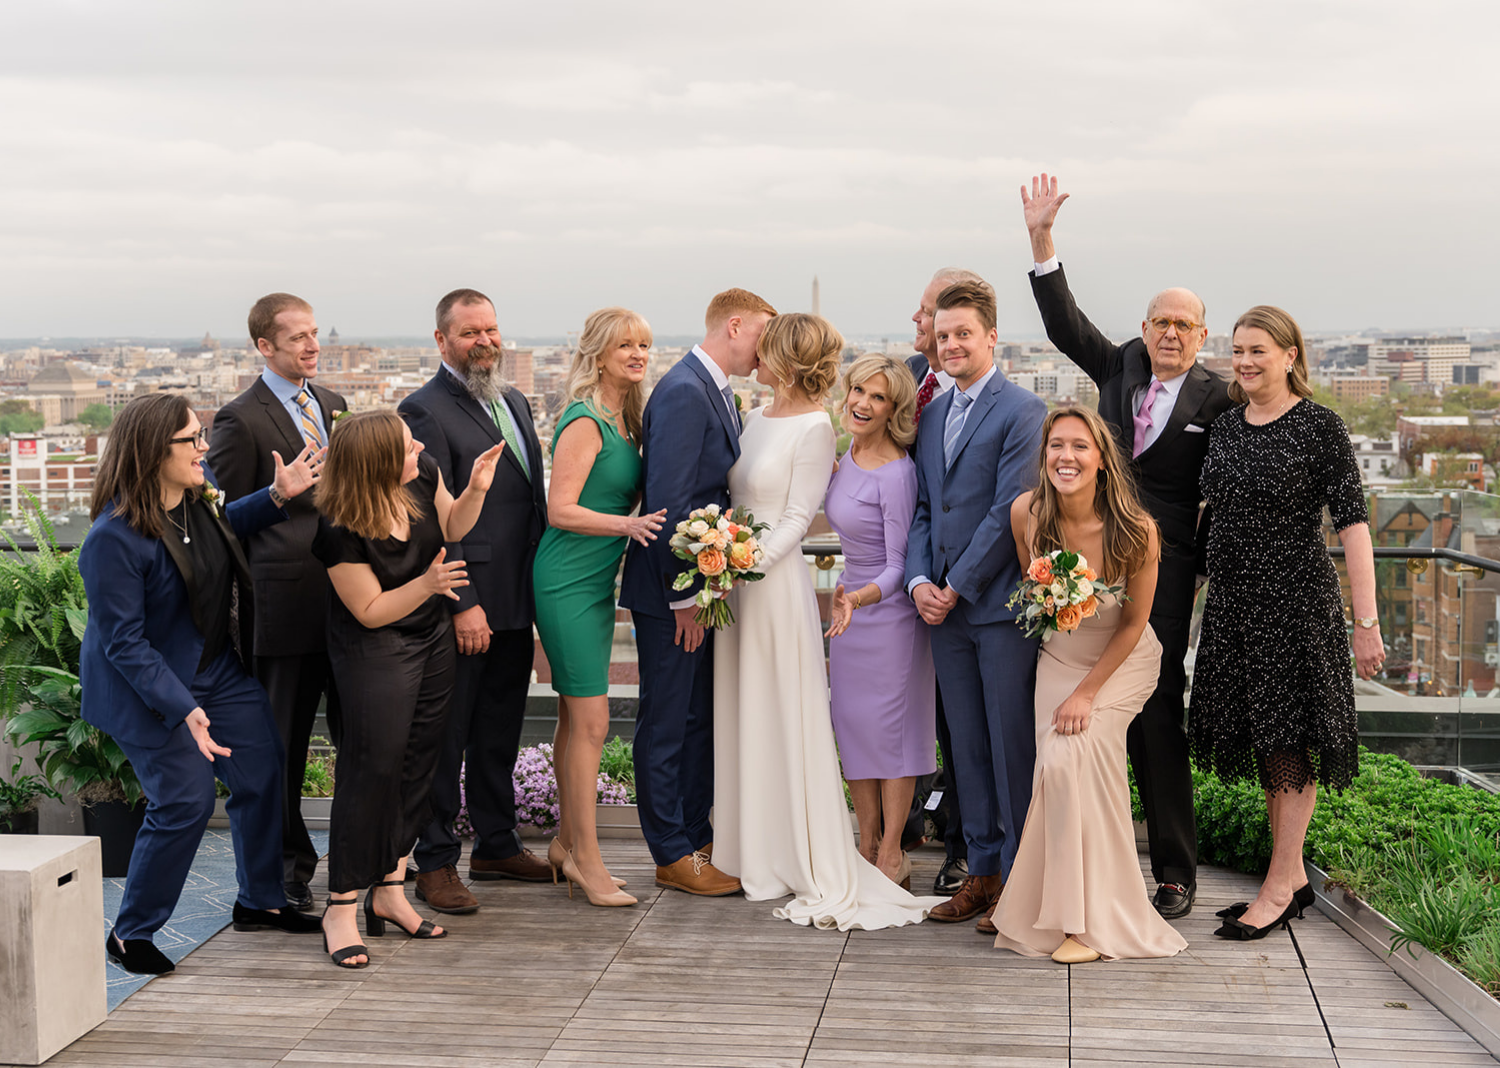 bride and groom share a kiss on the rooftop of the Line Hotel as their family gathers around them celebrating